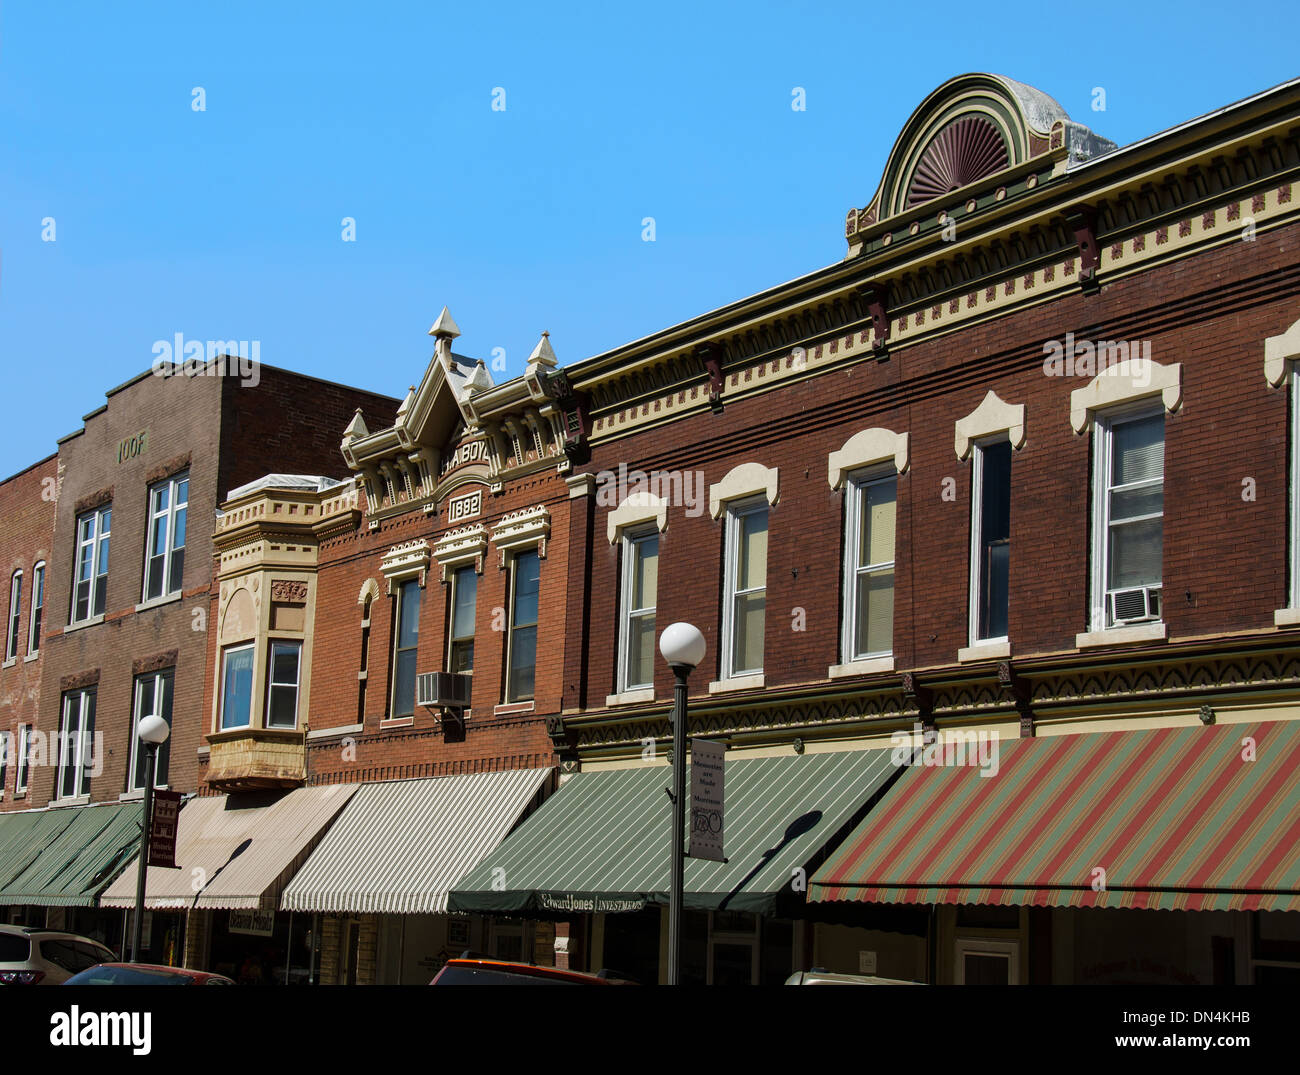 Buildings in the historic downtown area of Morrison, Illinois - Stock Image